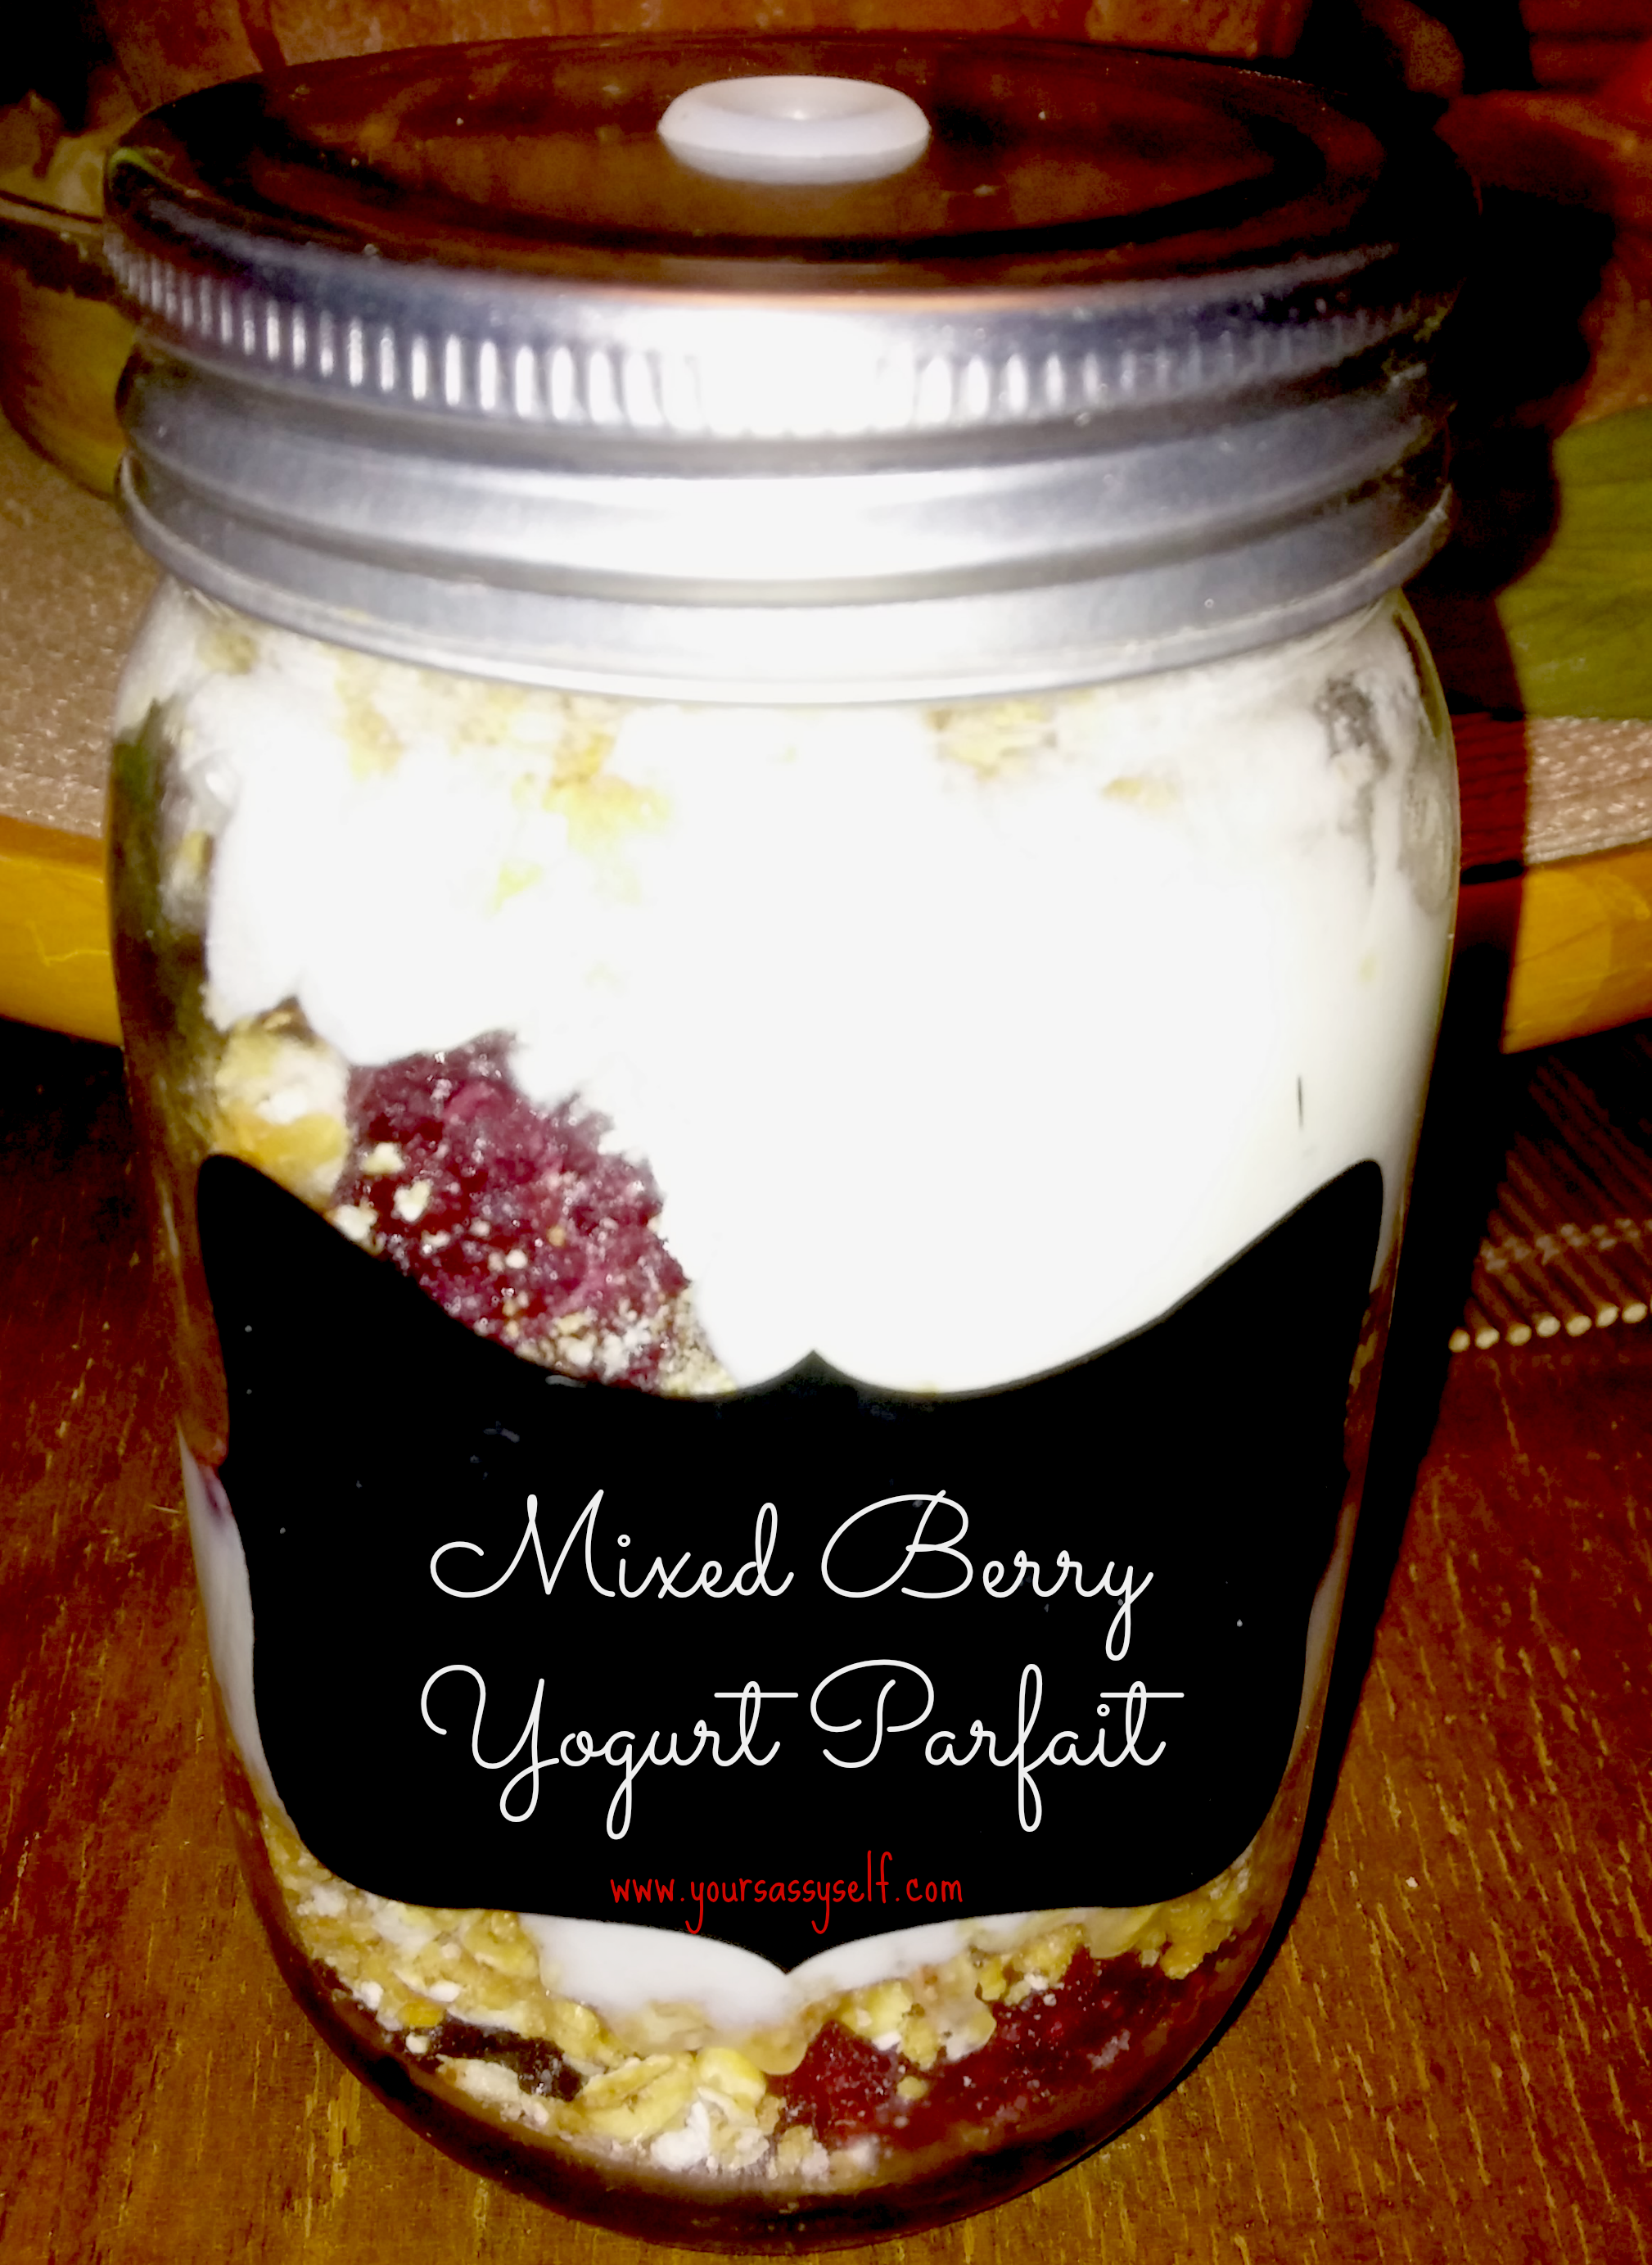 Deliciously Healthy Yogurt Parfait for Those on the Go